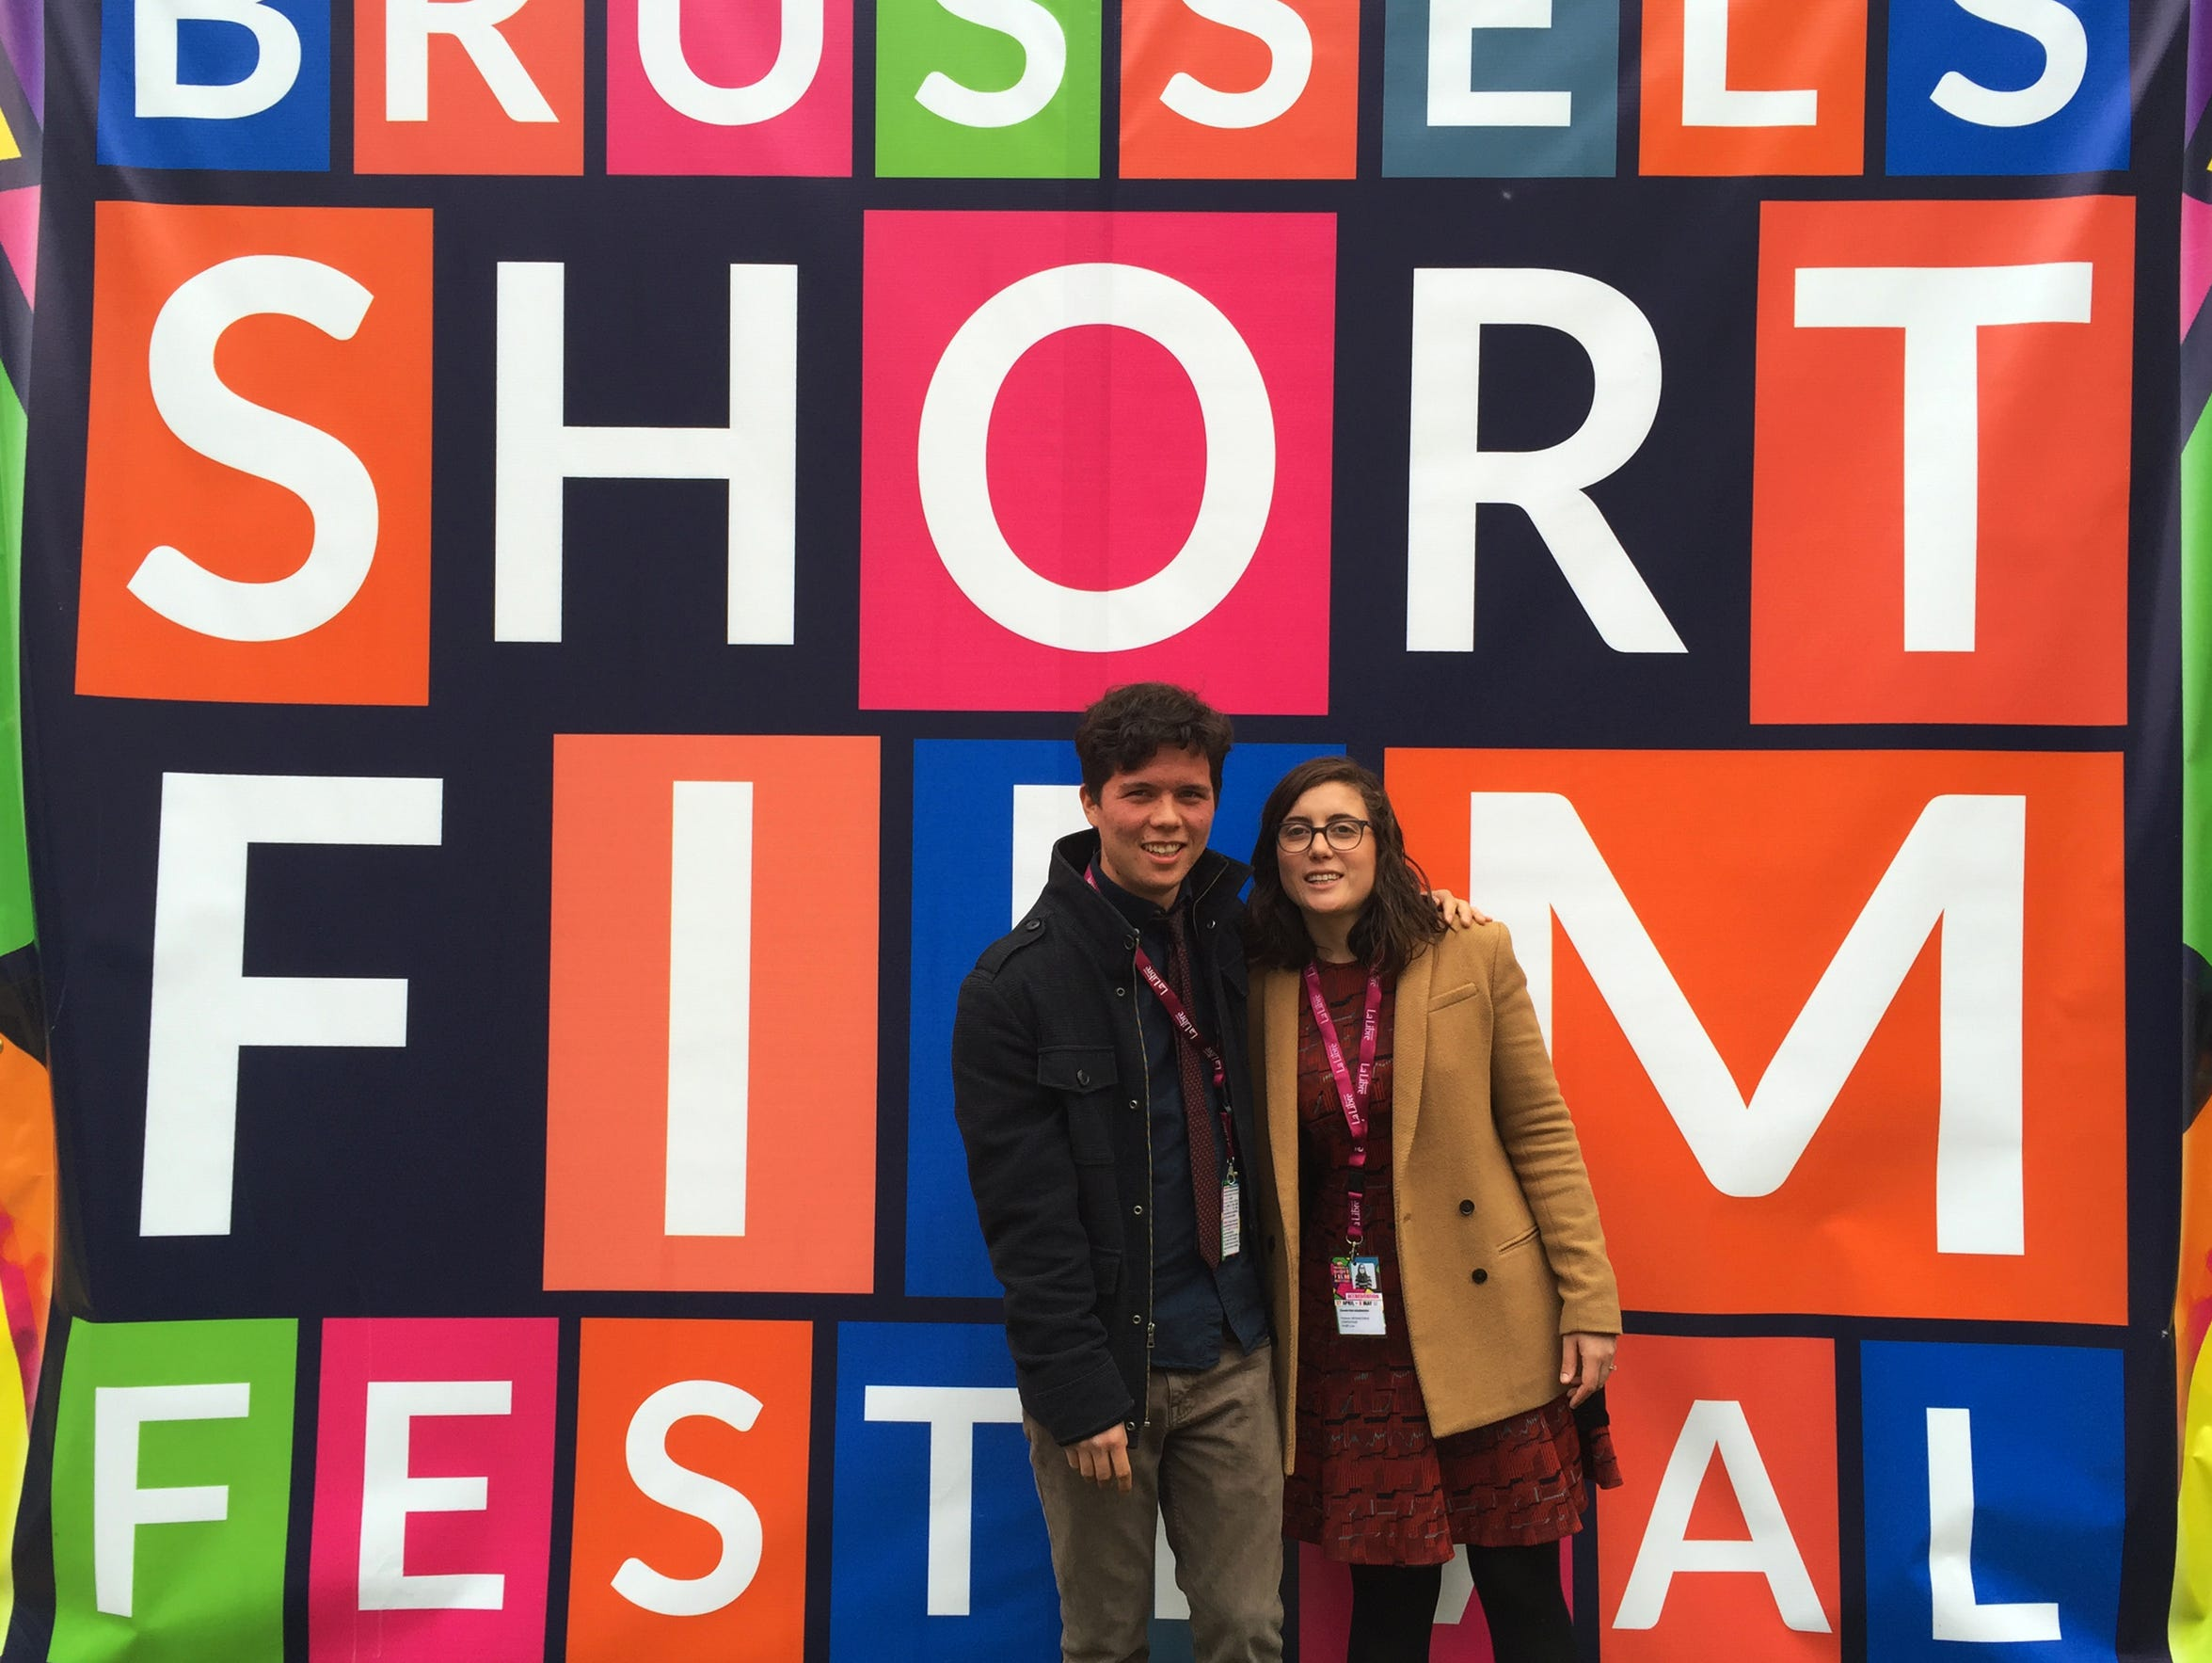 Filmmaker Sheridan O'Donnell and his fiancee at the